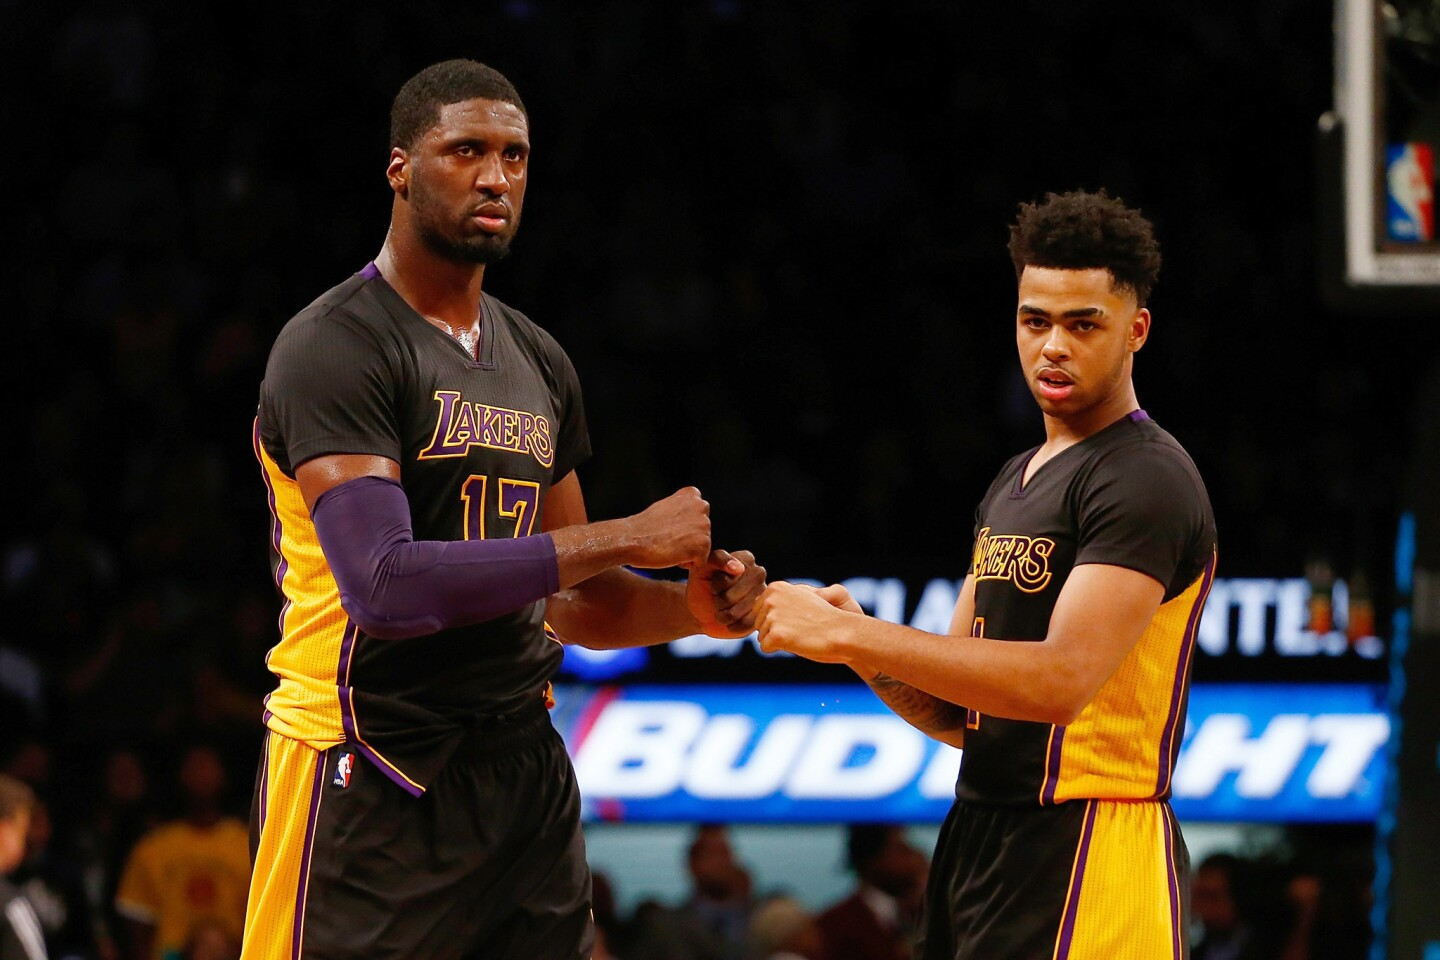 Lakers guard D'Angelo Russell and center Roy Hibbert (17) celebrate during a game against the Brooklyn Nets on on Nov. 6.